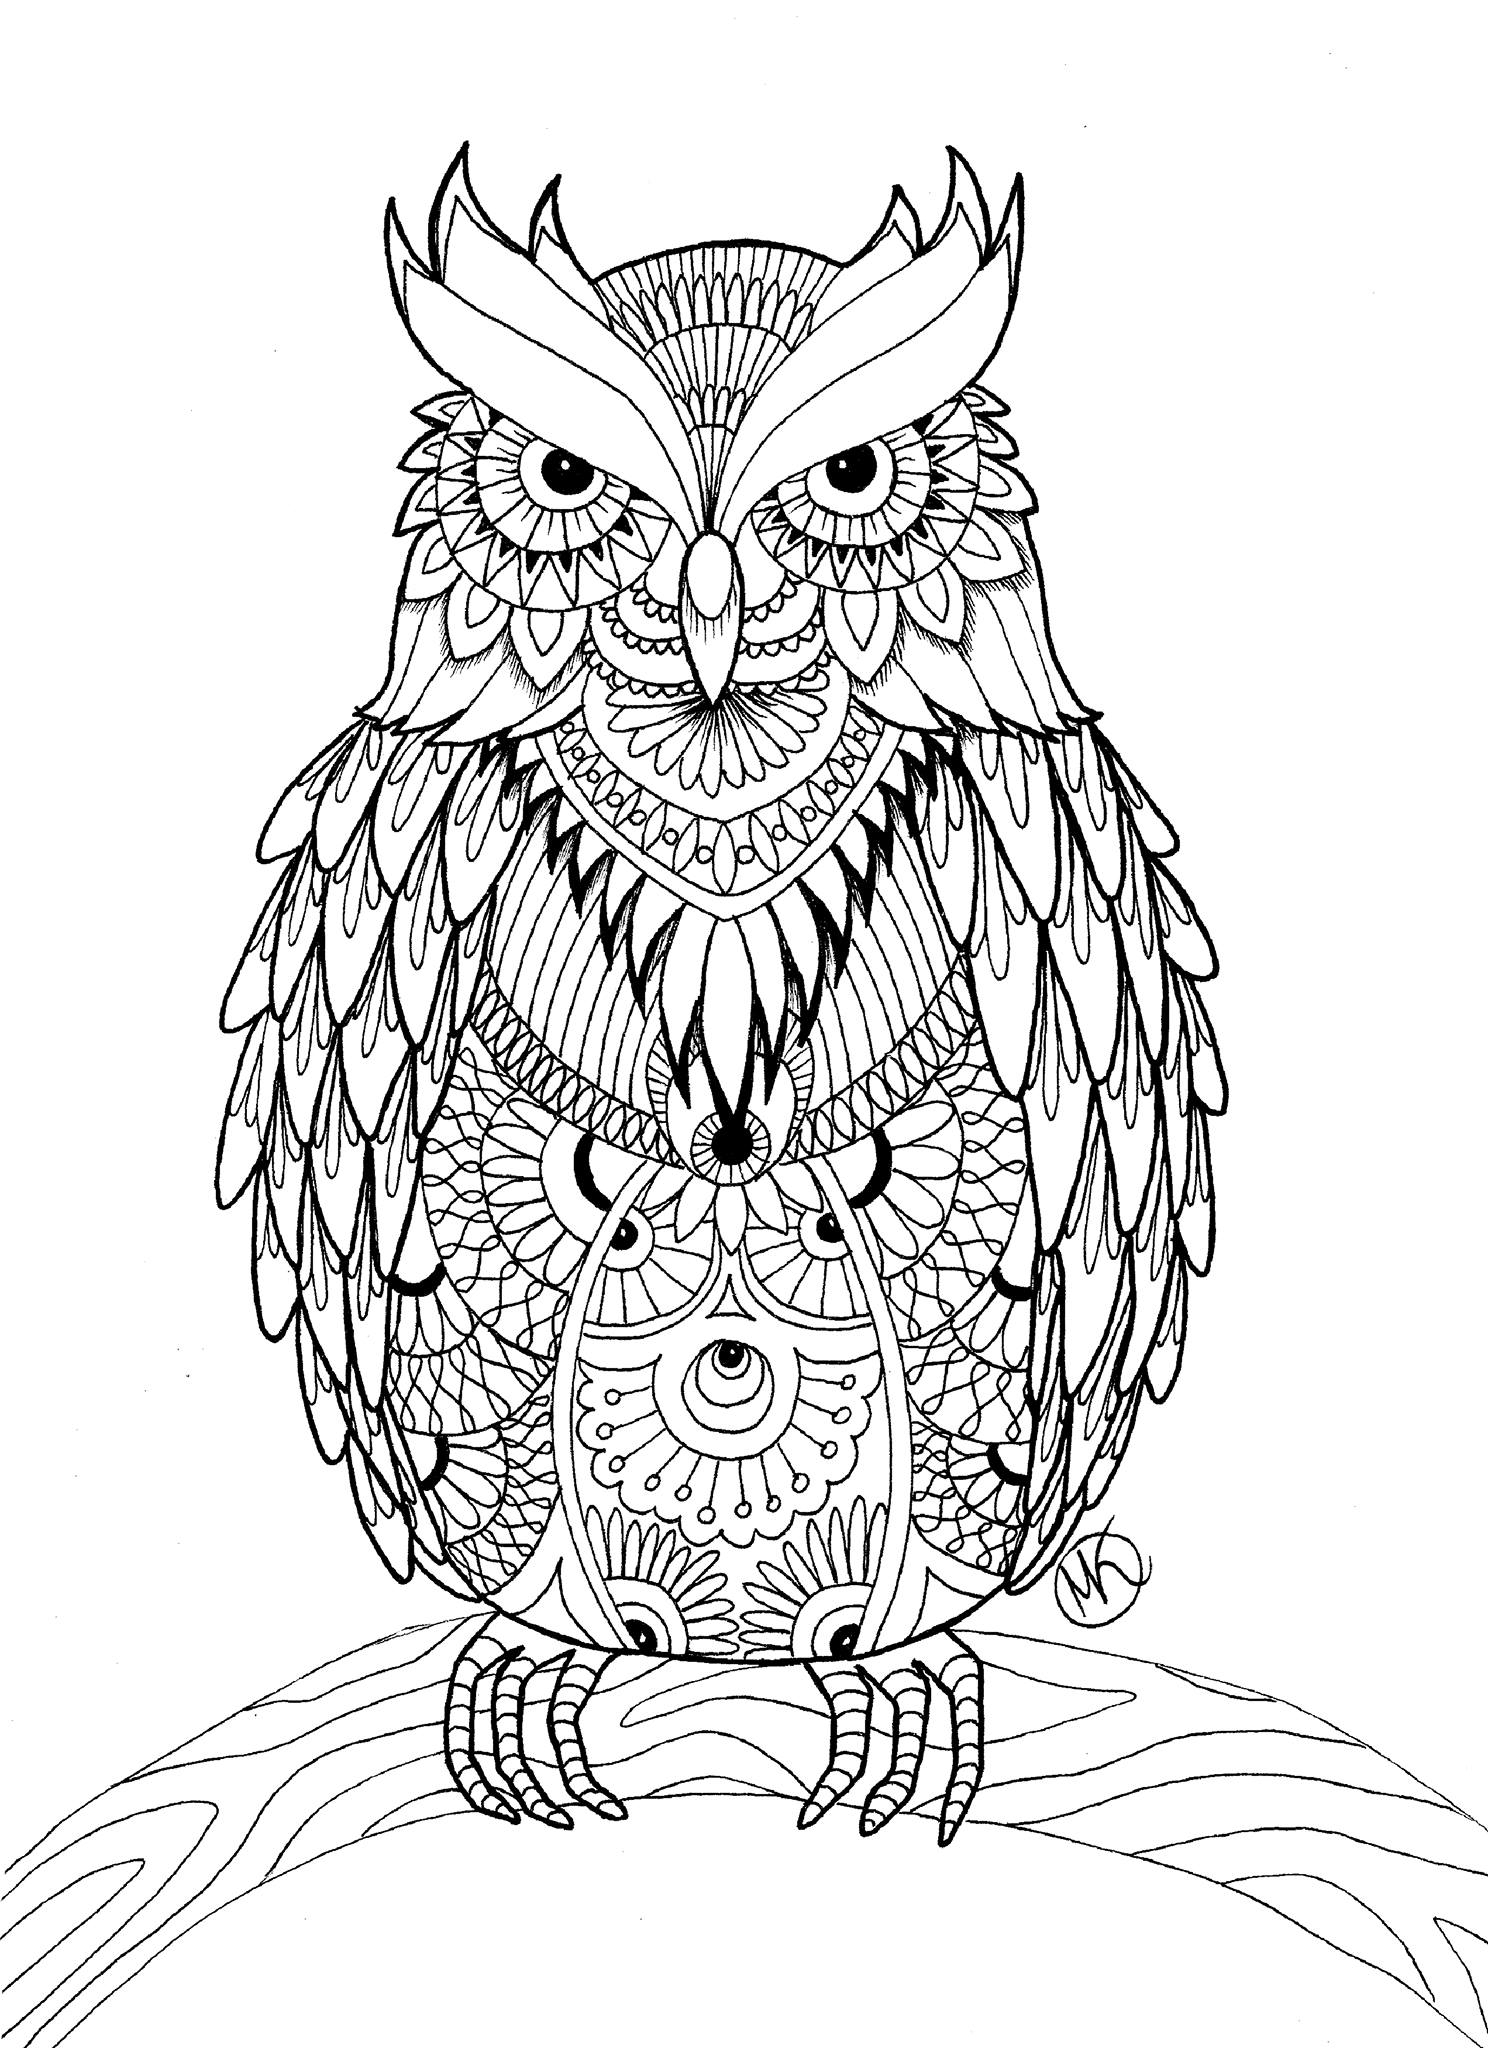 printable owl images owl printable coloring pages printable images owl